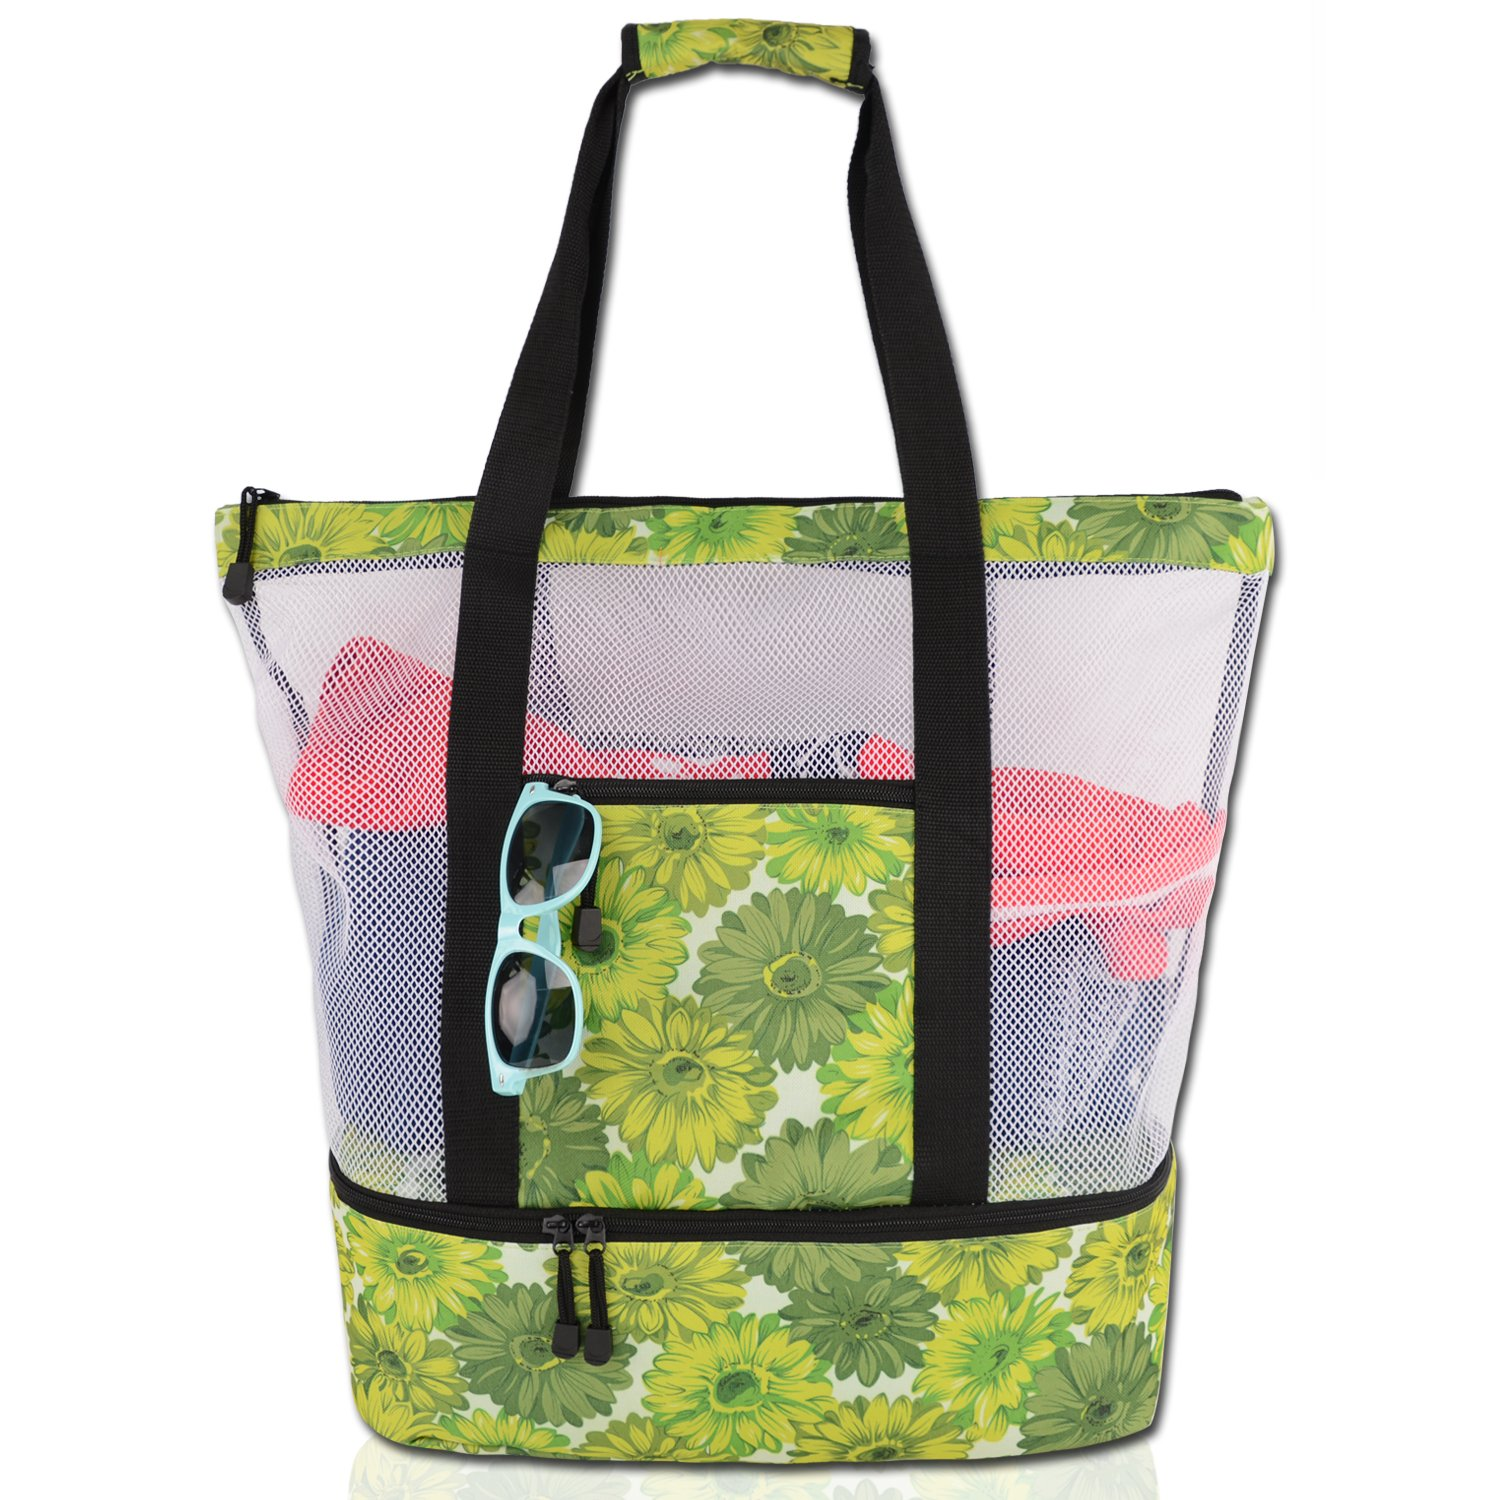 Rotanet Mesh Beach Tote Bag-Zipper Top with Insulated Picnic Cooler Extra Large (Green Flower) by ROTANET (Image #1)